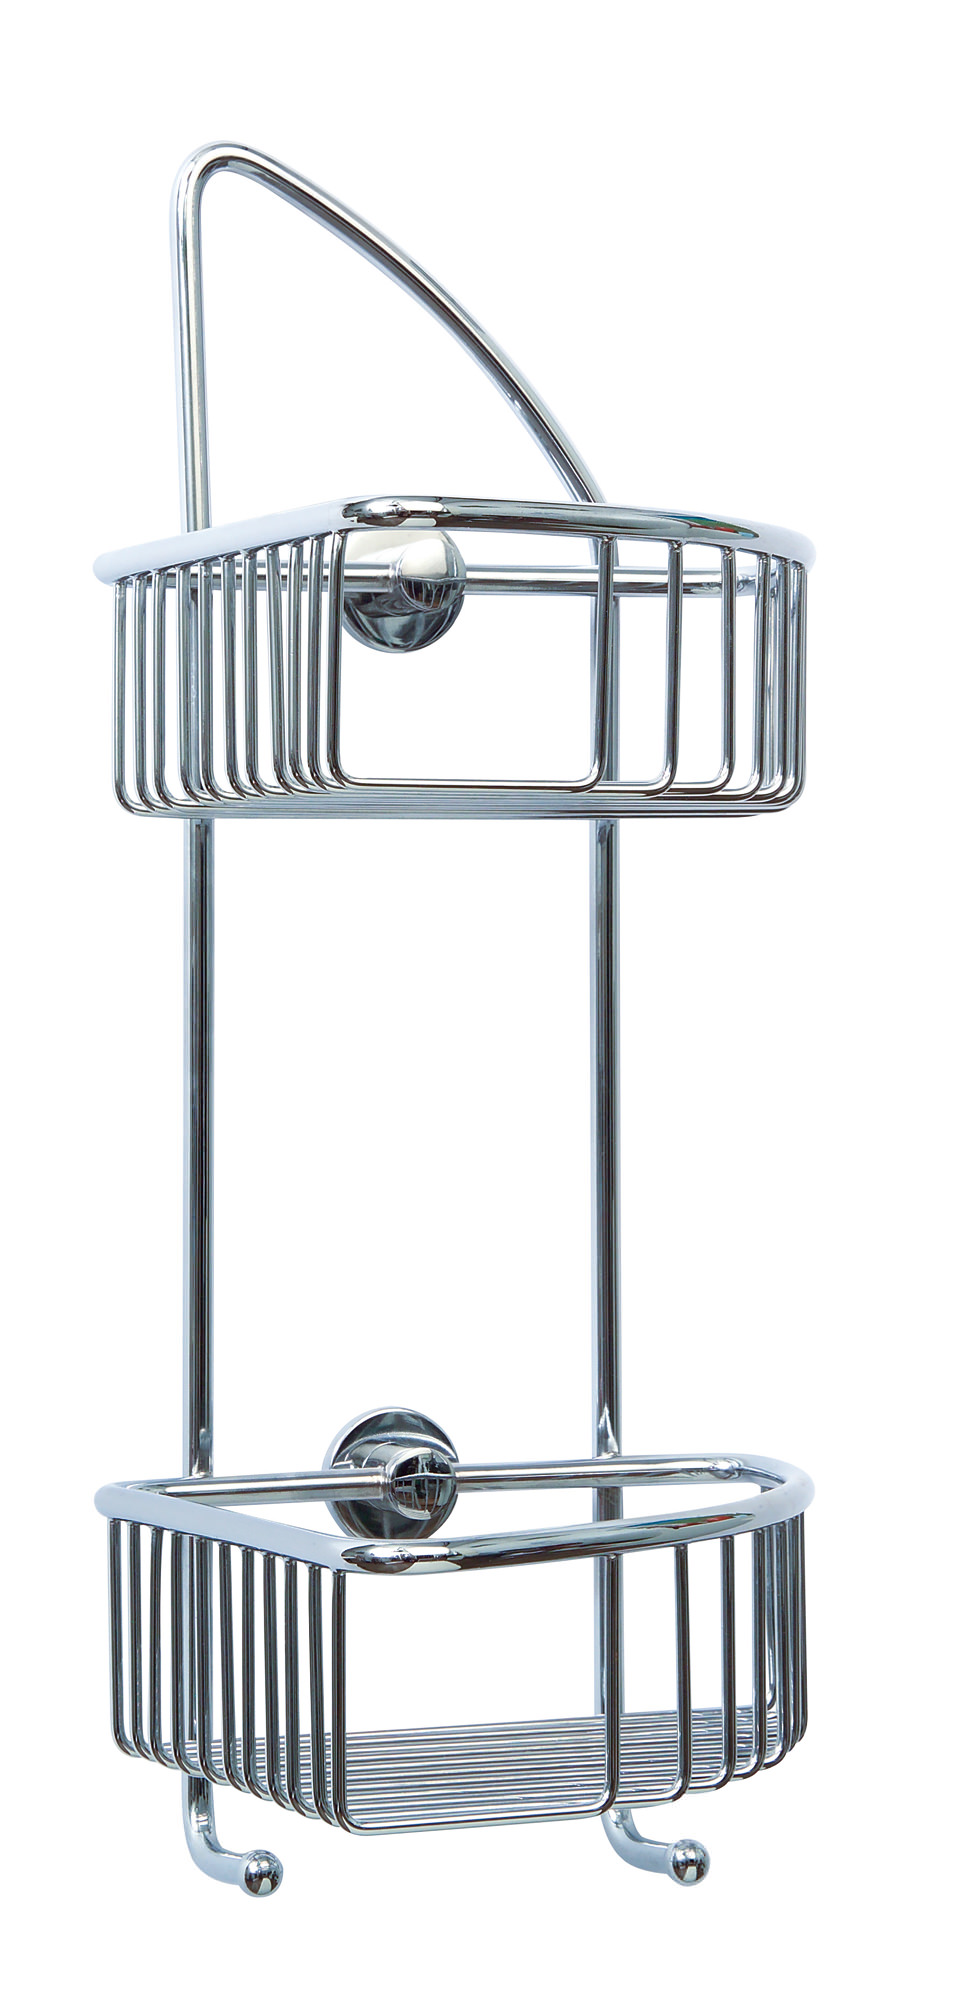 Red Dot Coorb Double Tier Corner Shower Caddy CO210